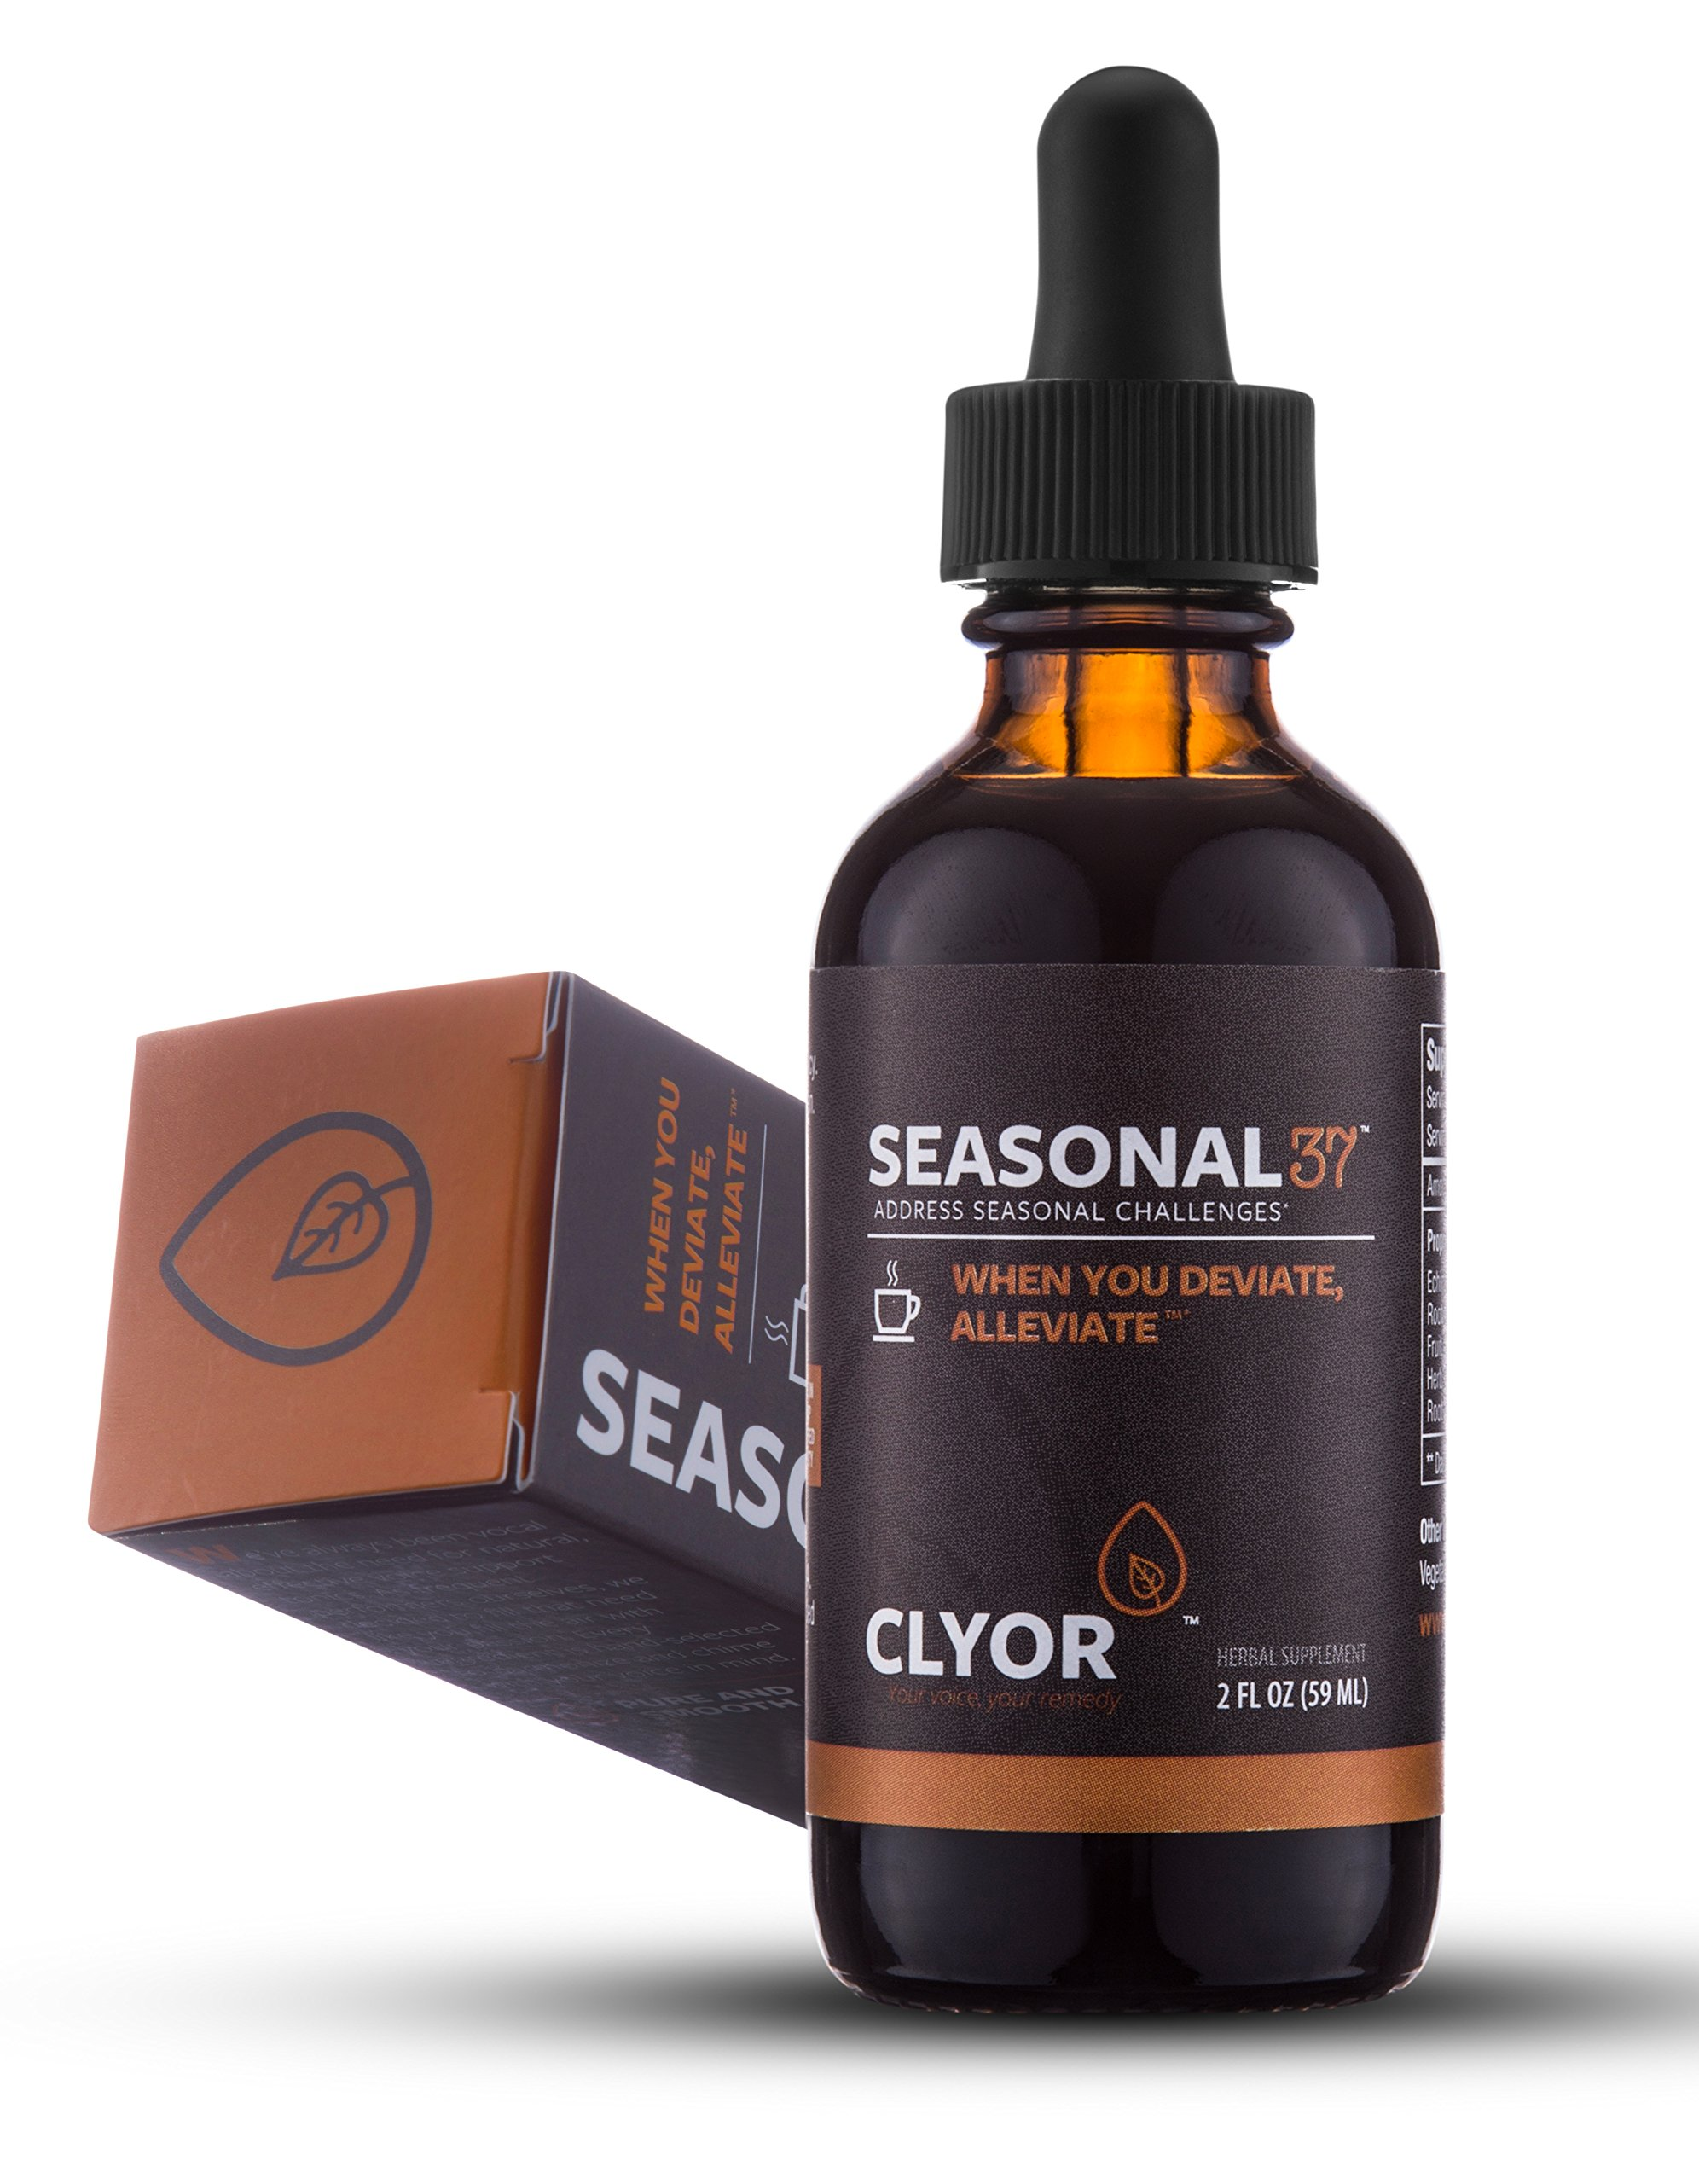 Seasonal37 - Cold Remedy - Fast Acting Cold Relief - All Natural Herbal Immune Booster Cold Flu Cough Respiratory Congestion, Elderberry, Ginger & Echinacea Herb 2oz - SEASONAL37 by Clyor by CLYOR (Image #1)